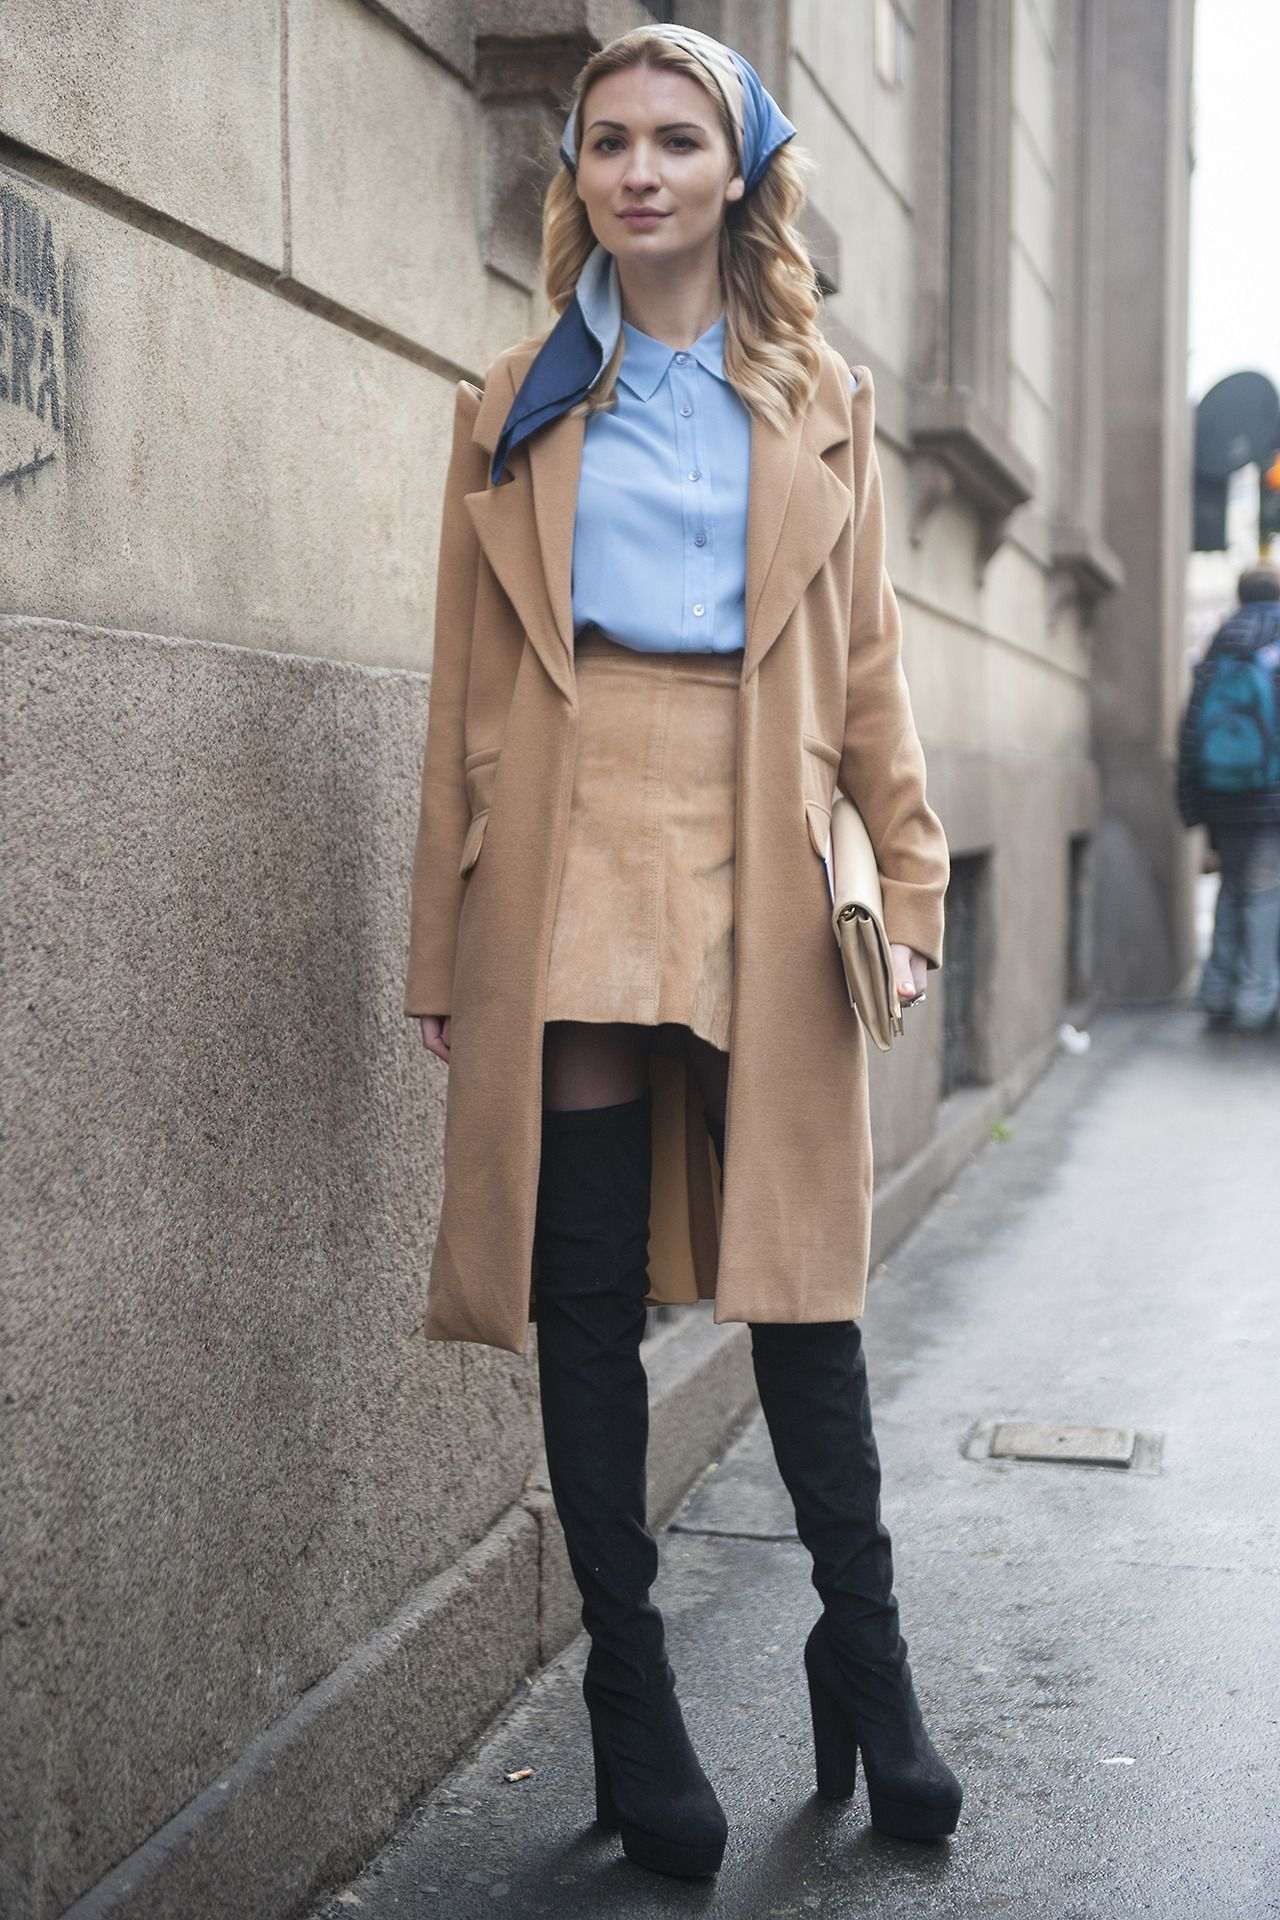 We adore '70s chic and this look is the sleekest flashback. In love with this, her boots are beaut!!!